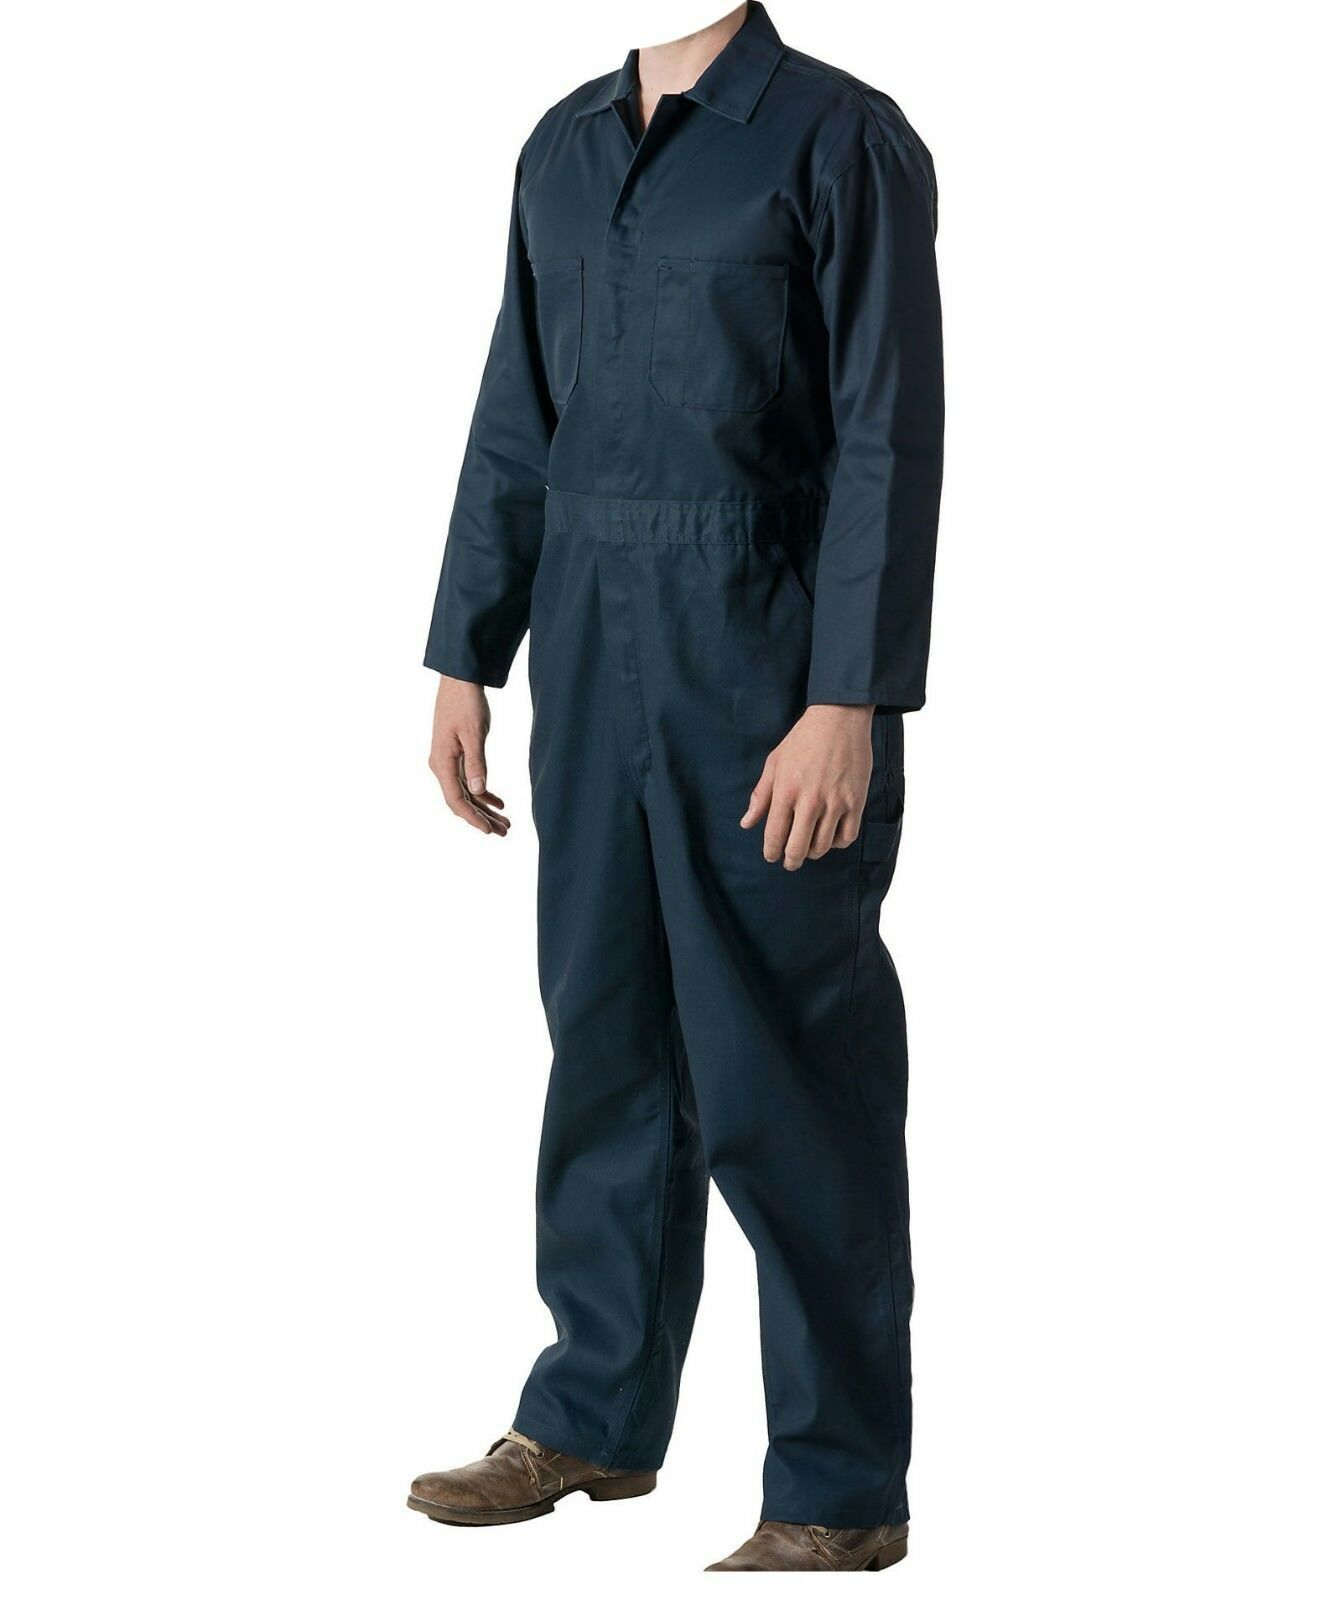 pin by red herring design on spectra work coveralls on insulated work overalls id=80761